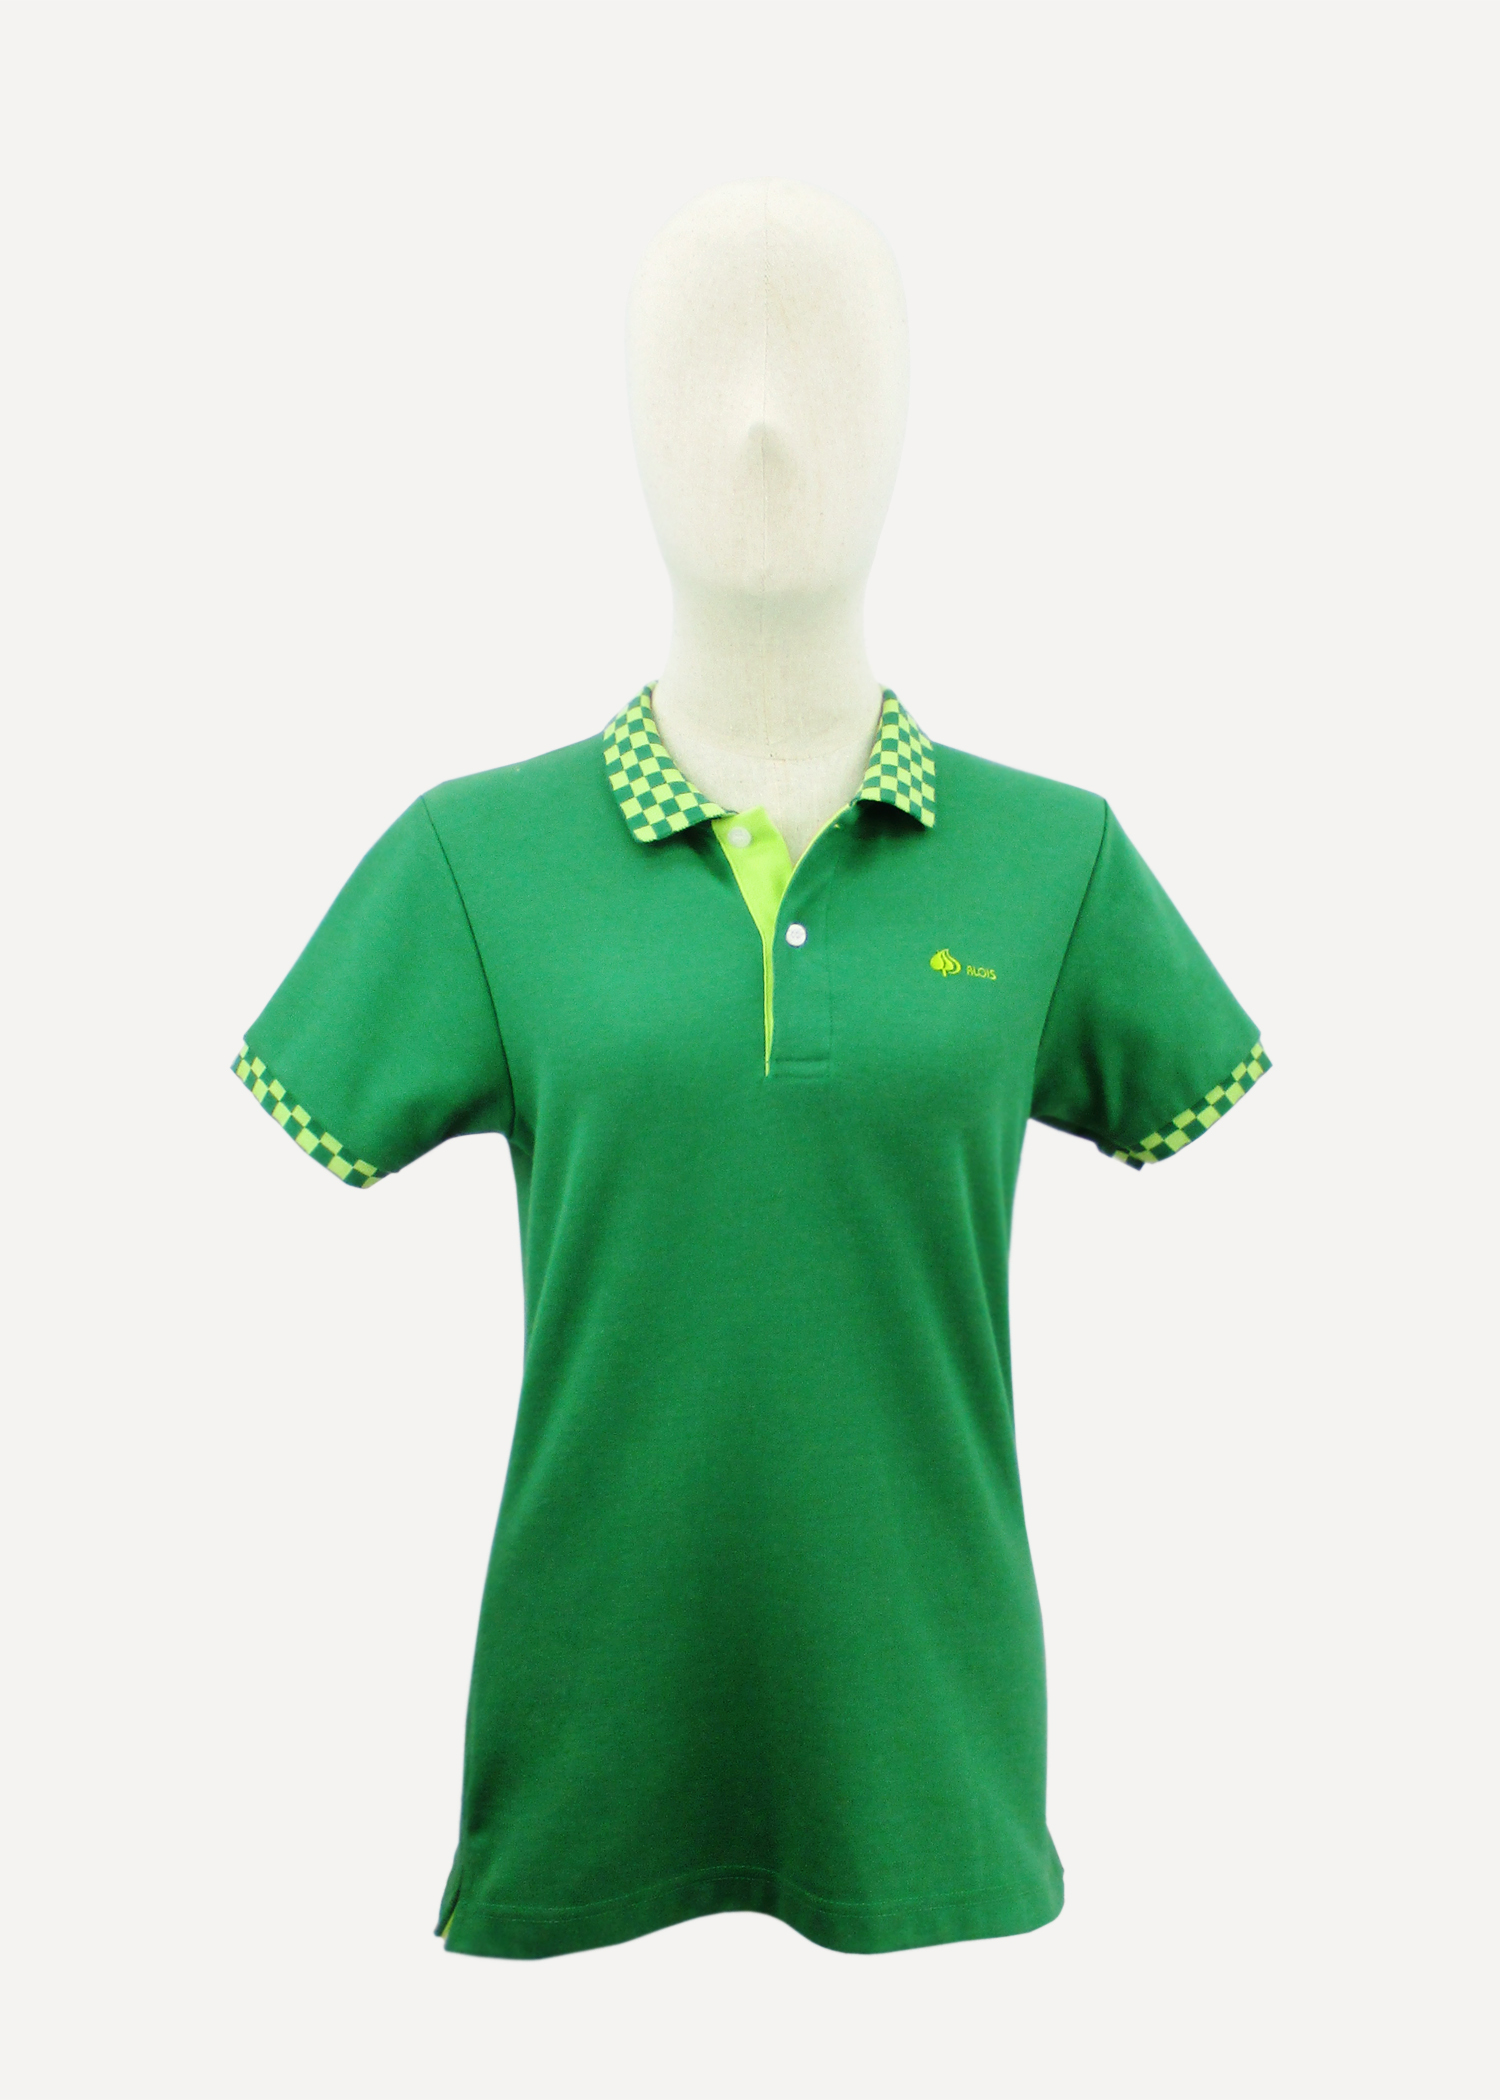 Polo shirt 11 kanarug garment company limited for Order company polo shirts